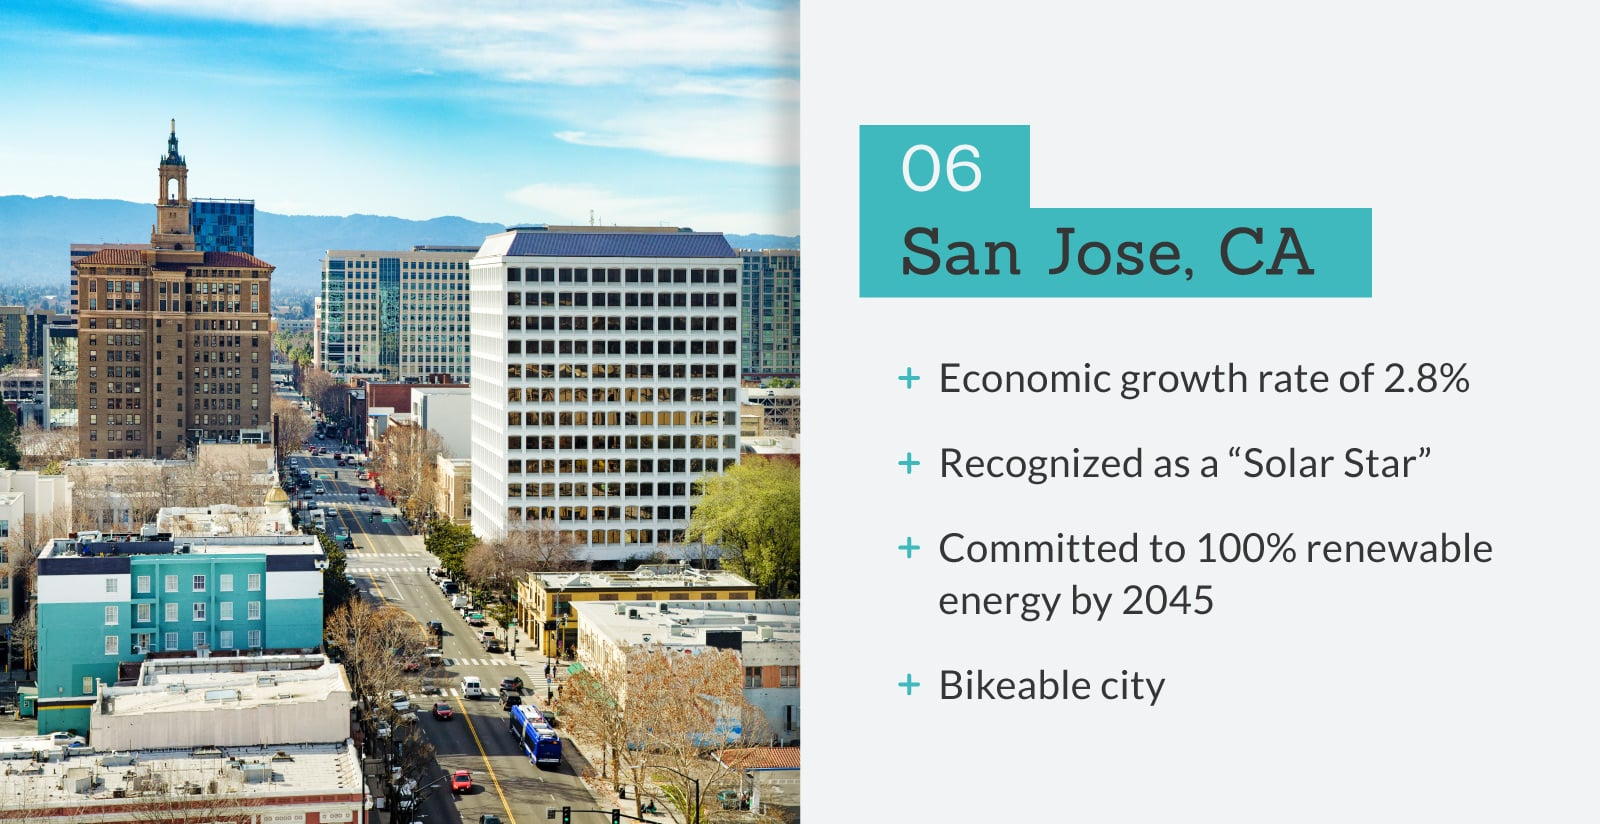 picture of San Jose, CA with stats.